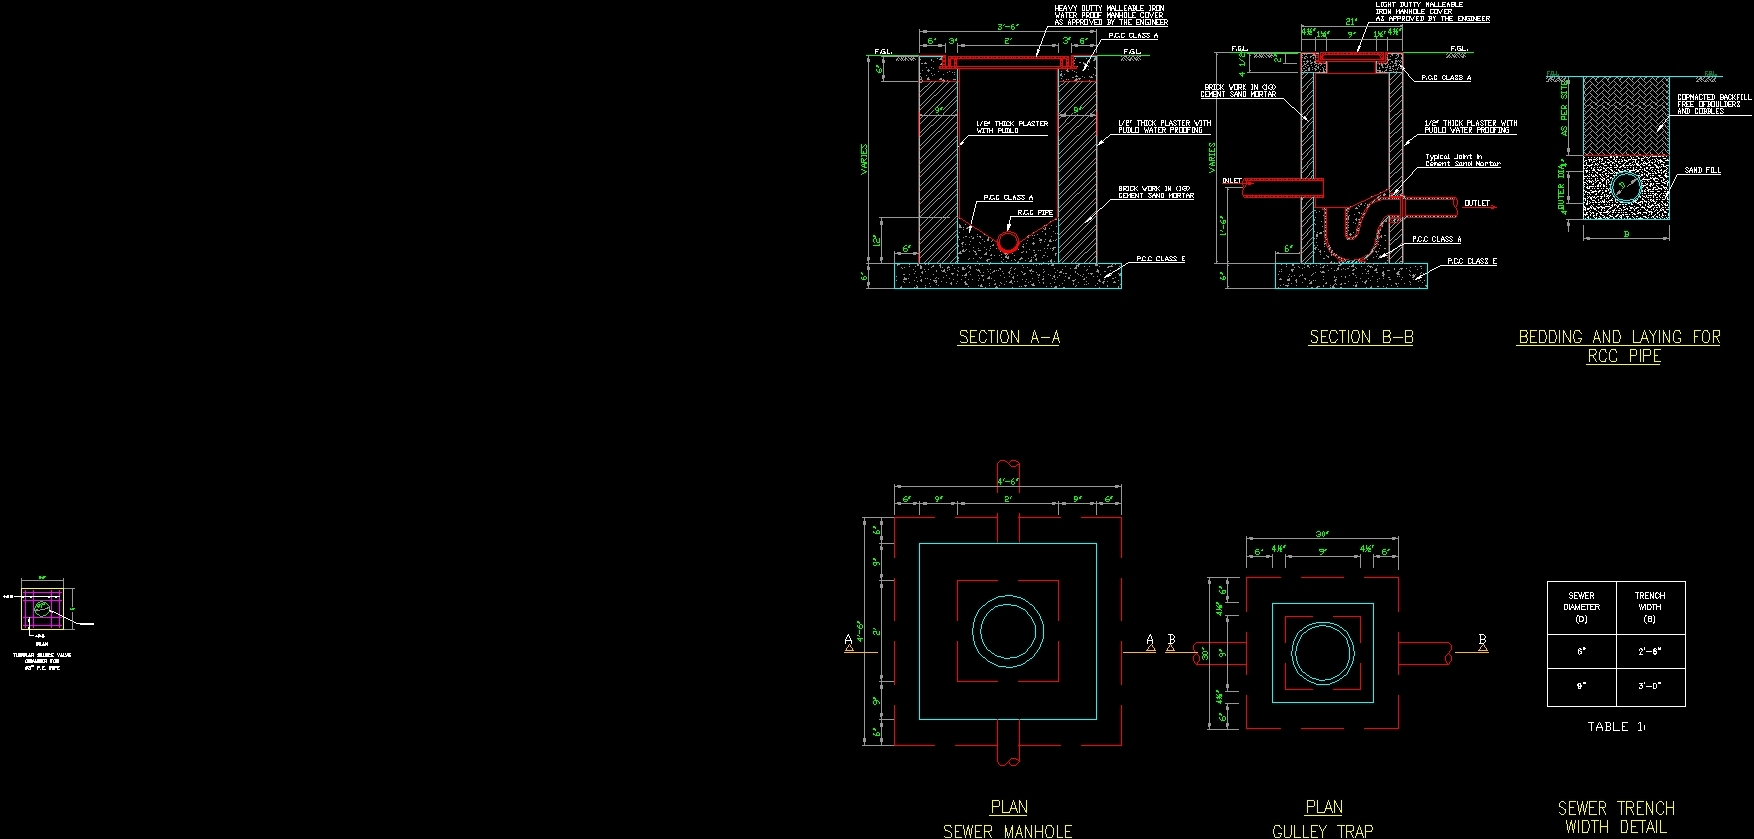 detail sewer wastewater dwg detail for autocad  u2022 designs cad